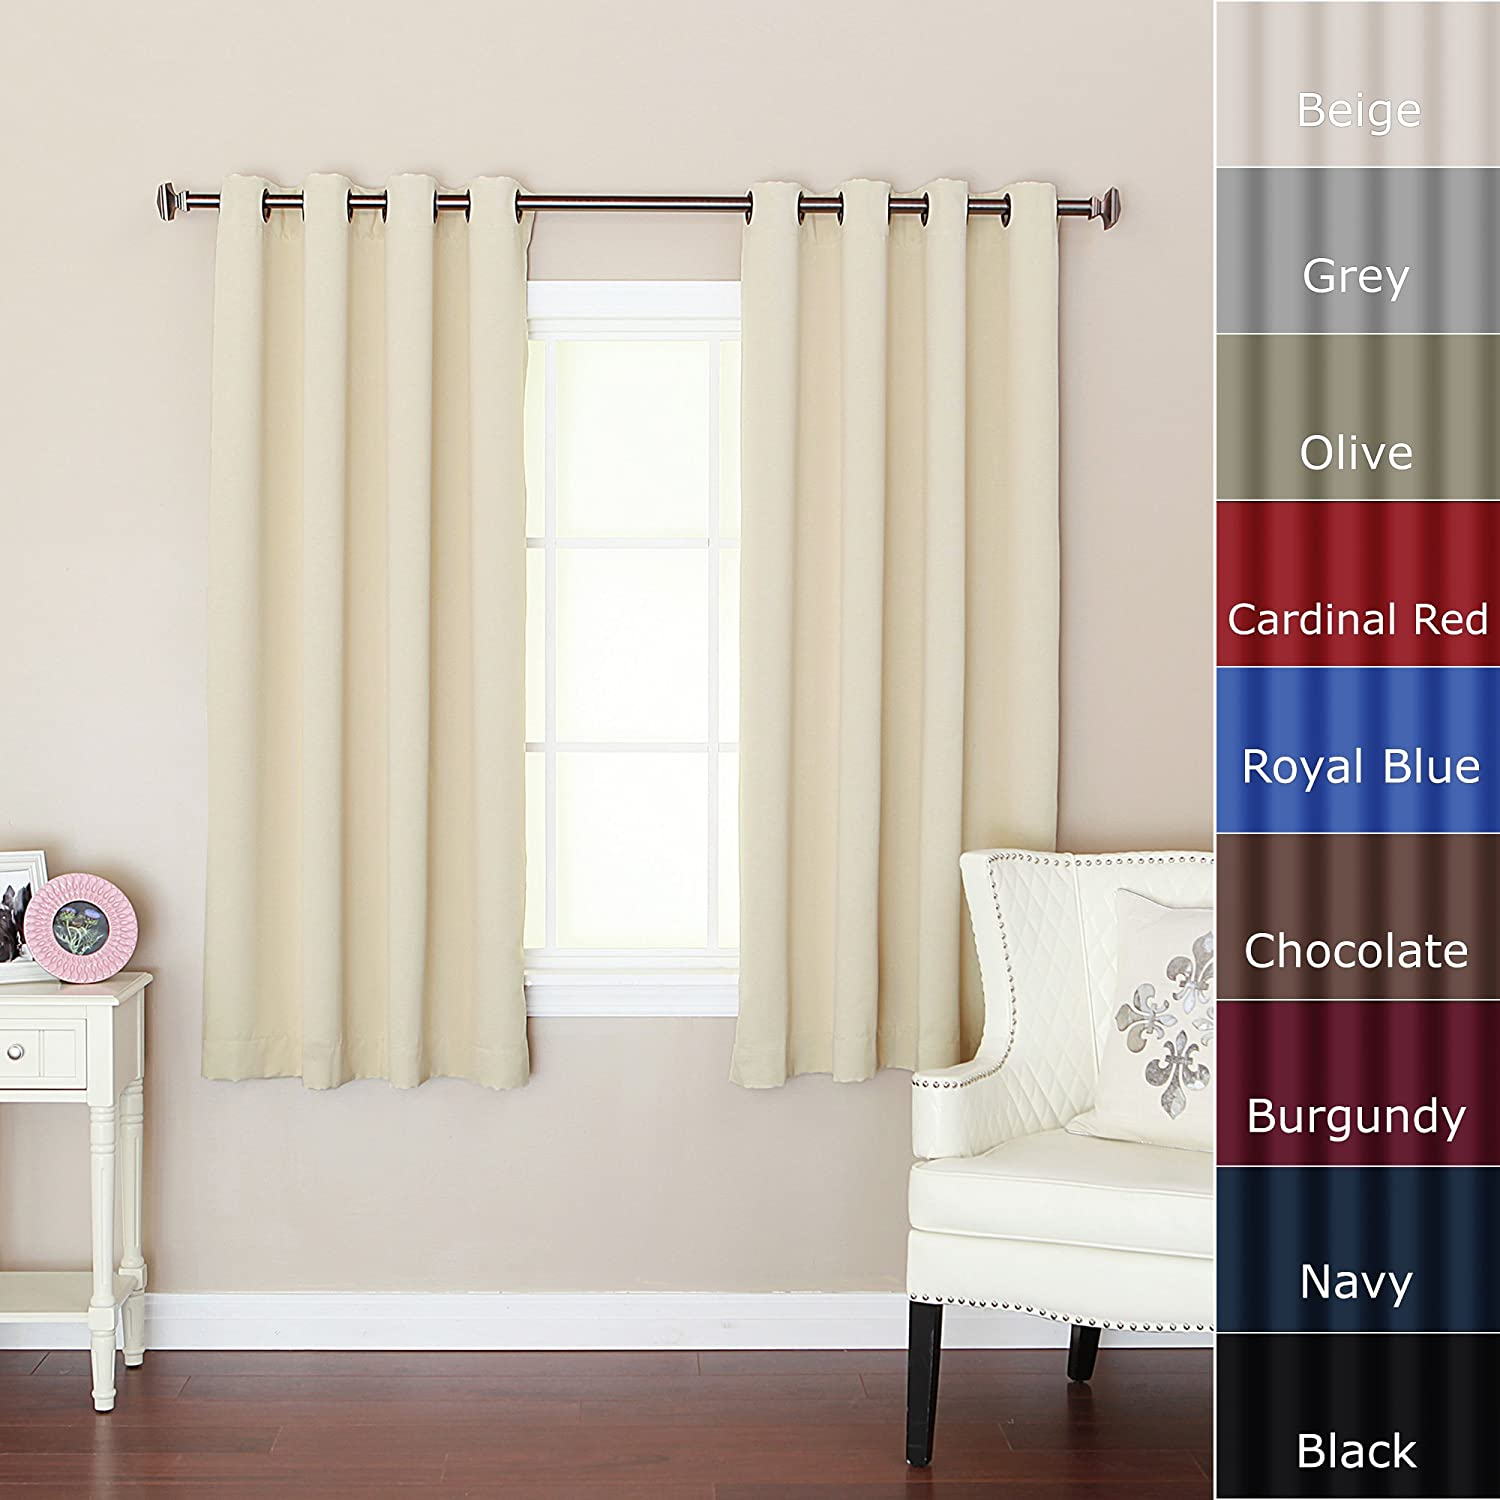 Blackout Curtains Home Depot Venetian Window Curtains